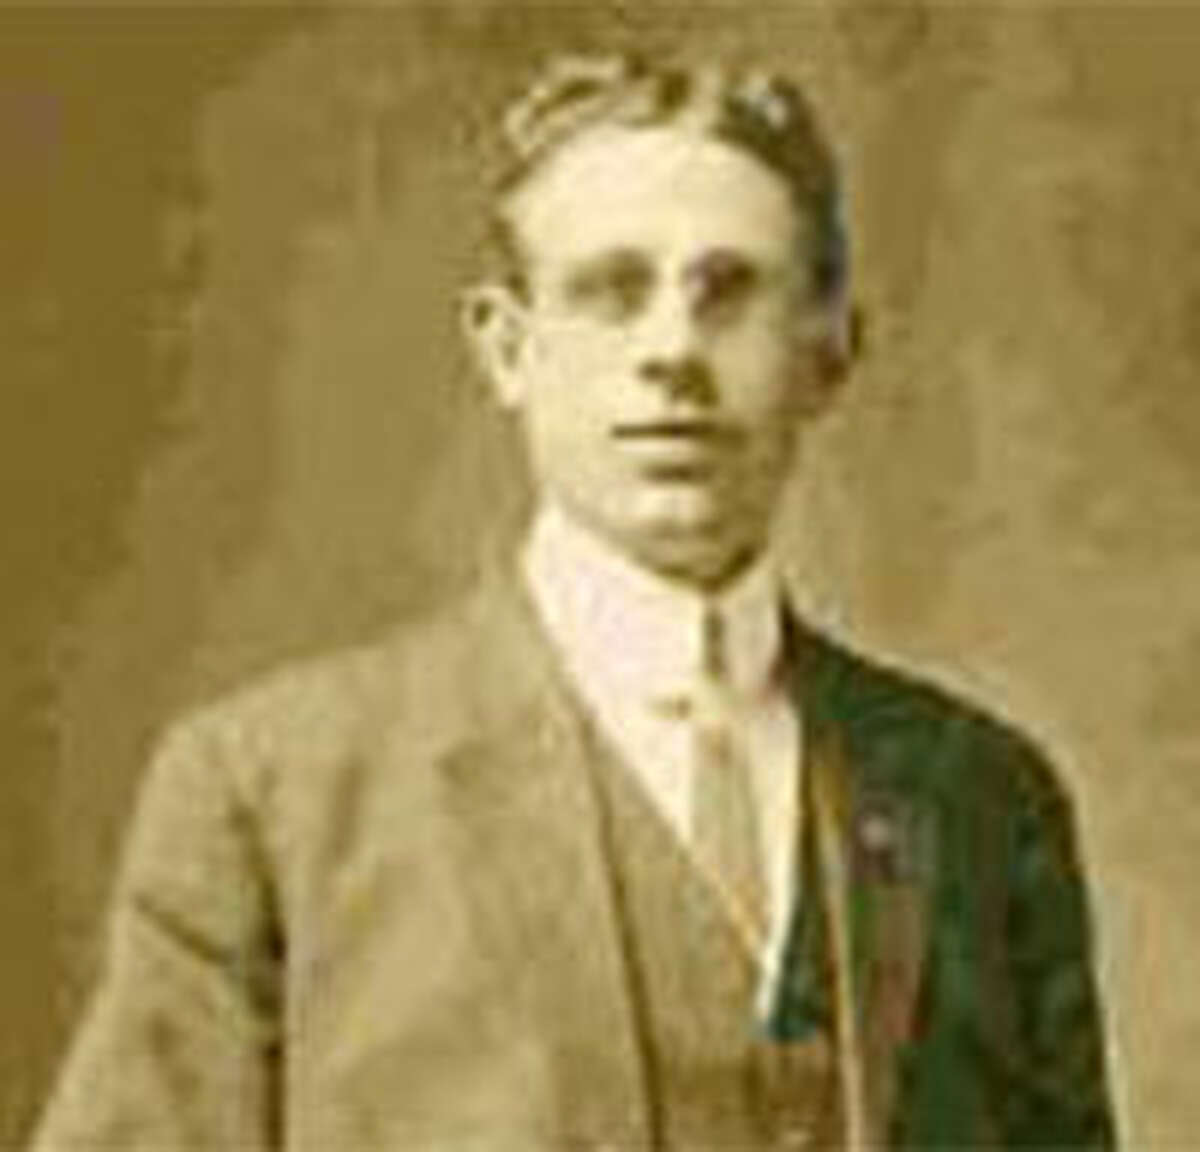 Oscar Palmquist, who died mysteriously in Bridgeport in 1925.